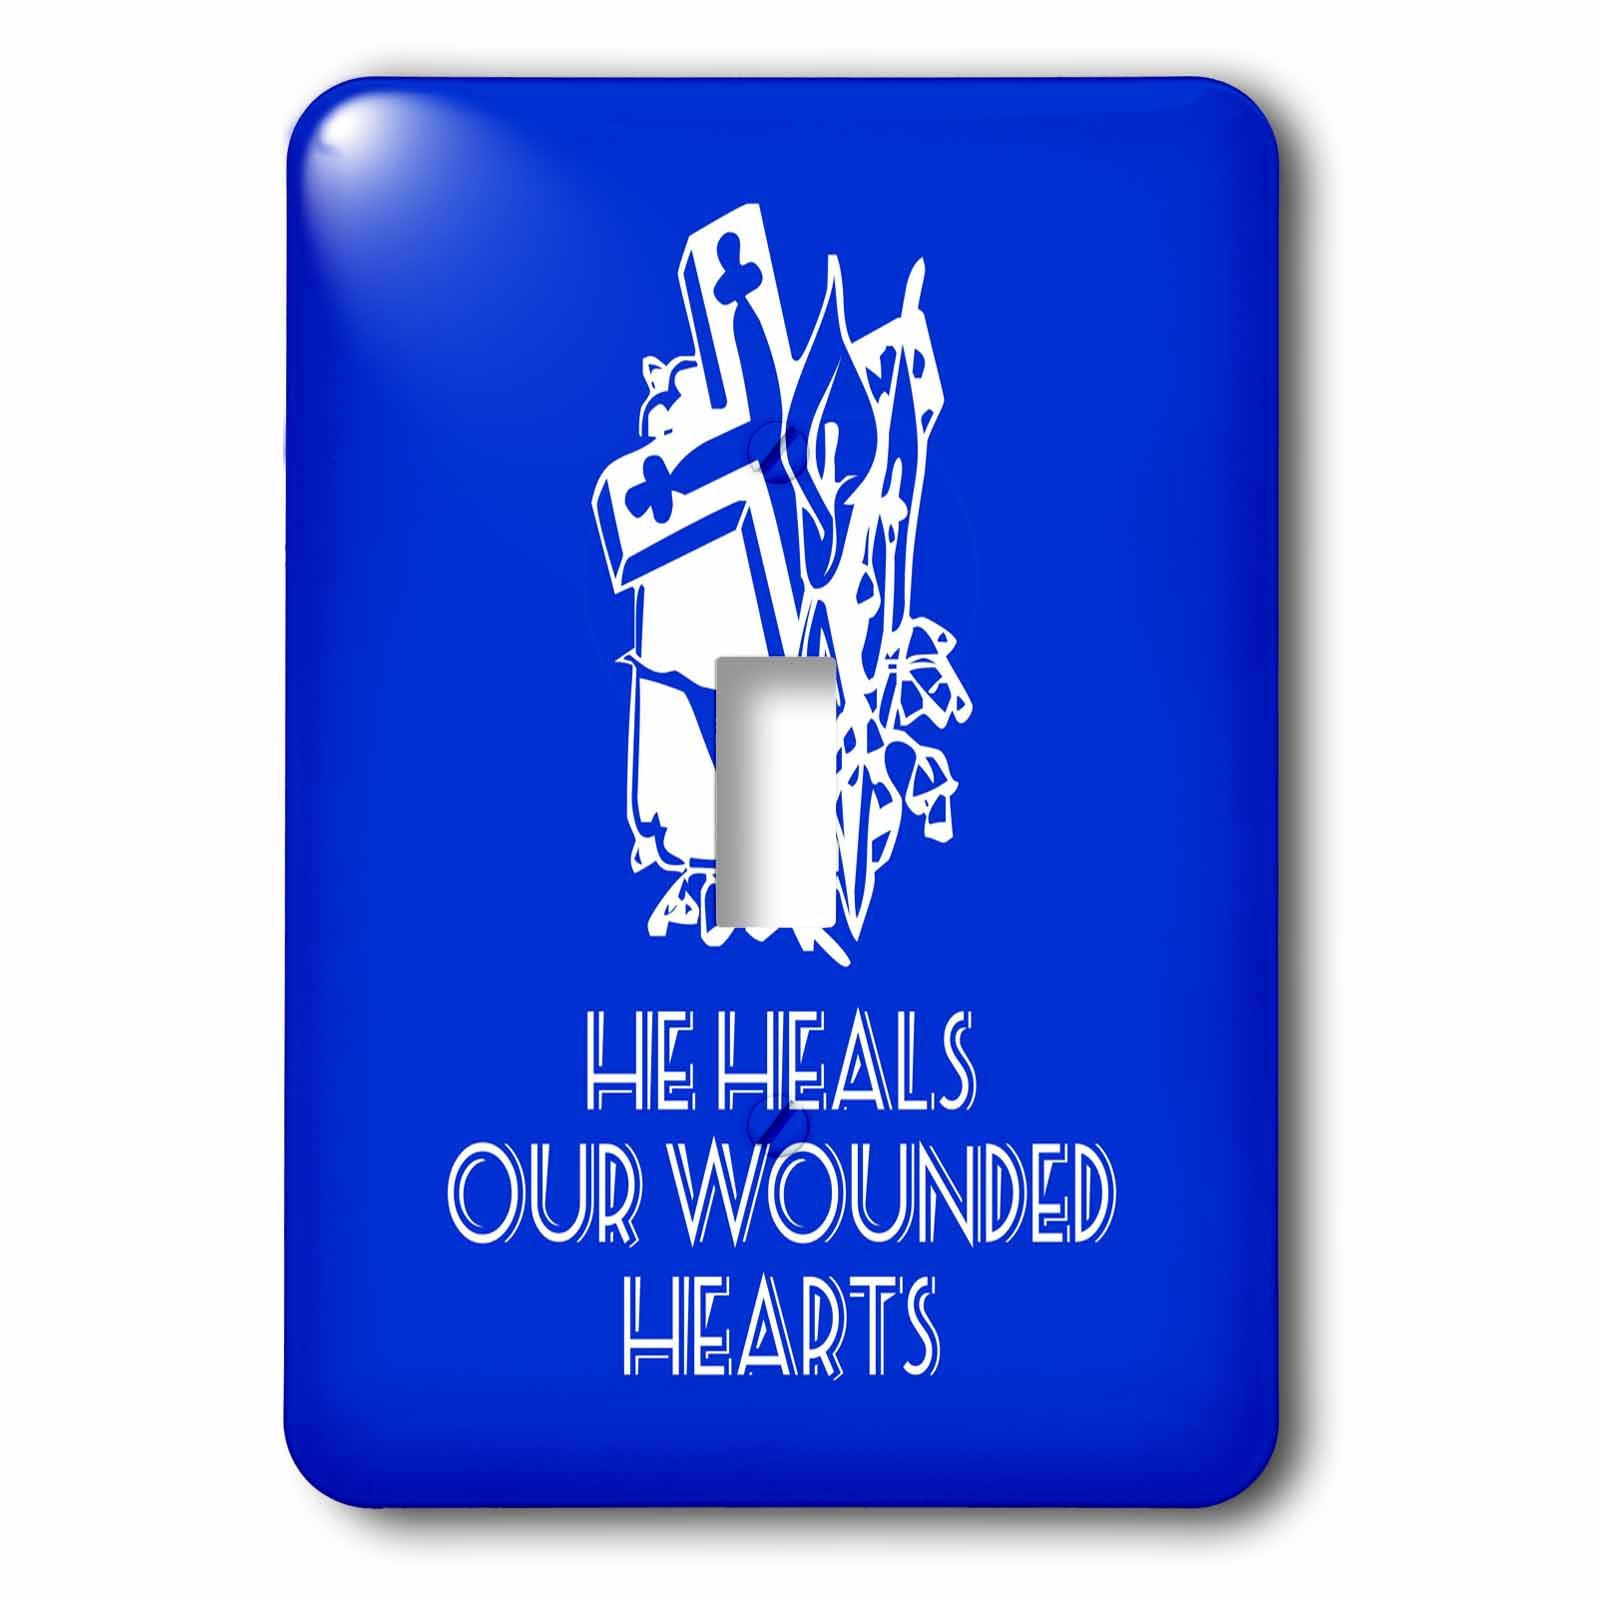 3dRose Alexis Design - Christian - Cross and flowers, the text He heals our wounded hearts on blue - Light Switch Covers - single toggle switch (lsp_286185_1)